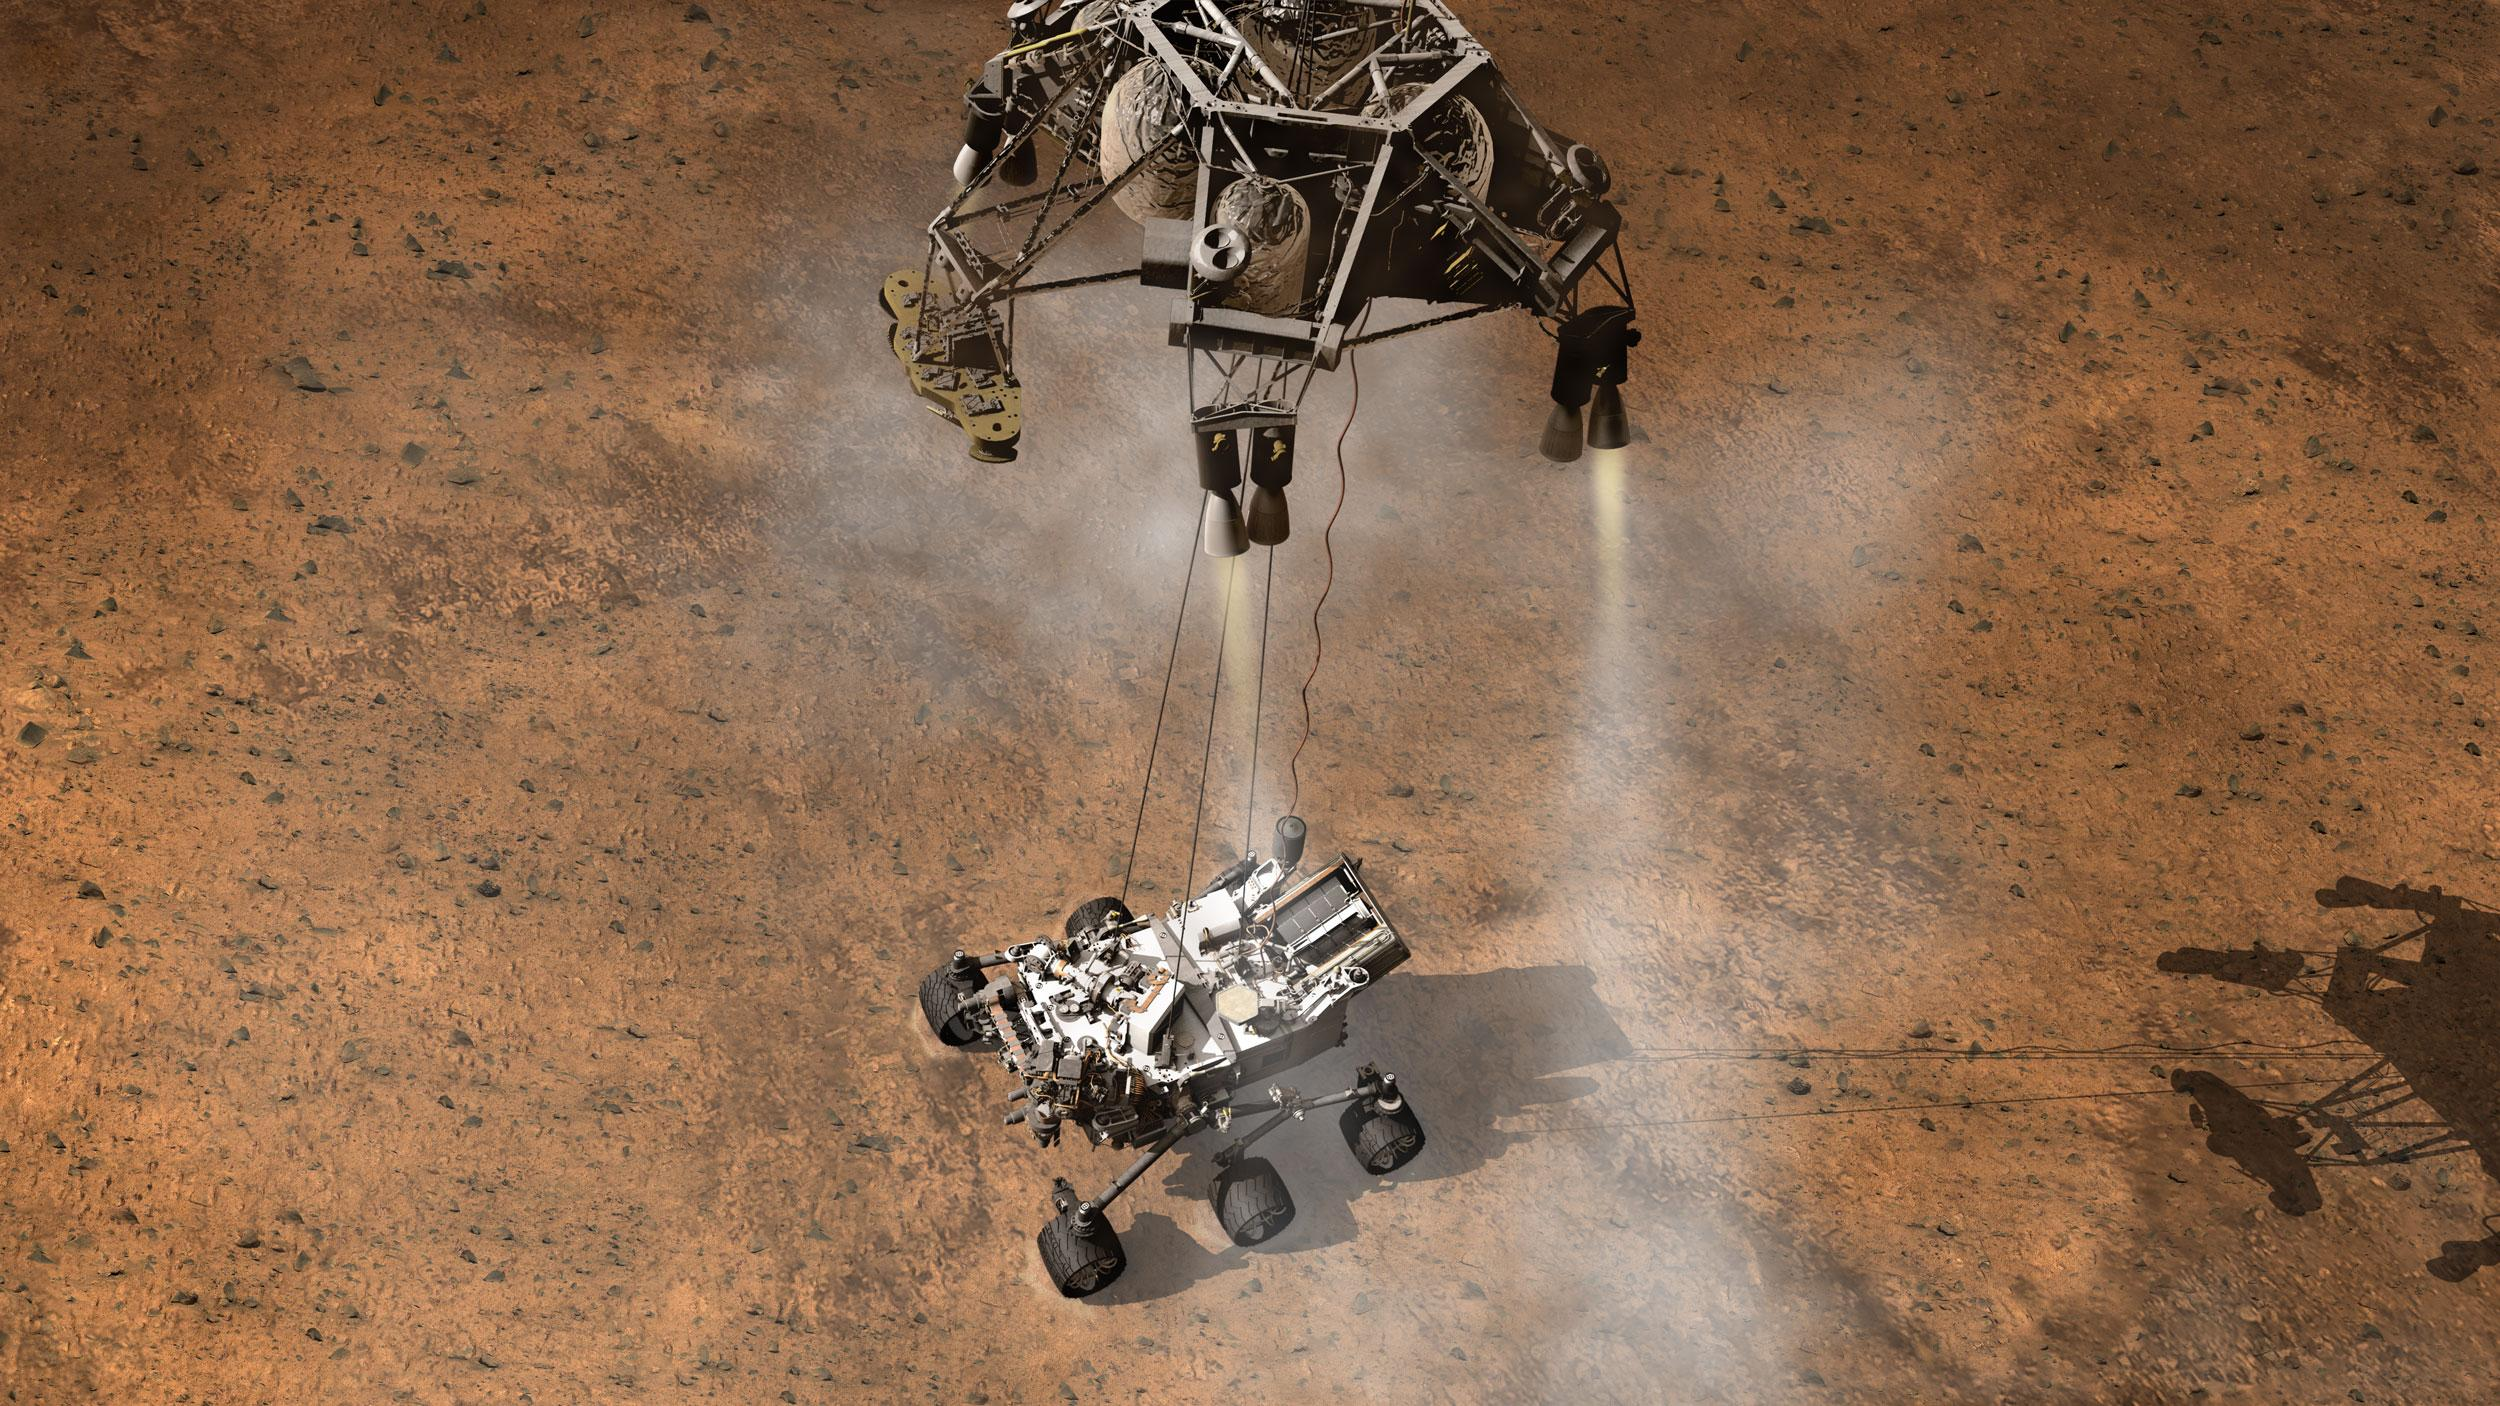 speech on successful landing on mars One of the key challenges any spacecraft seeking to make a soft landing on mars would face is that the thin atmosphere of the red planet provides barely any air resistance.